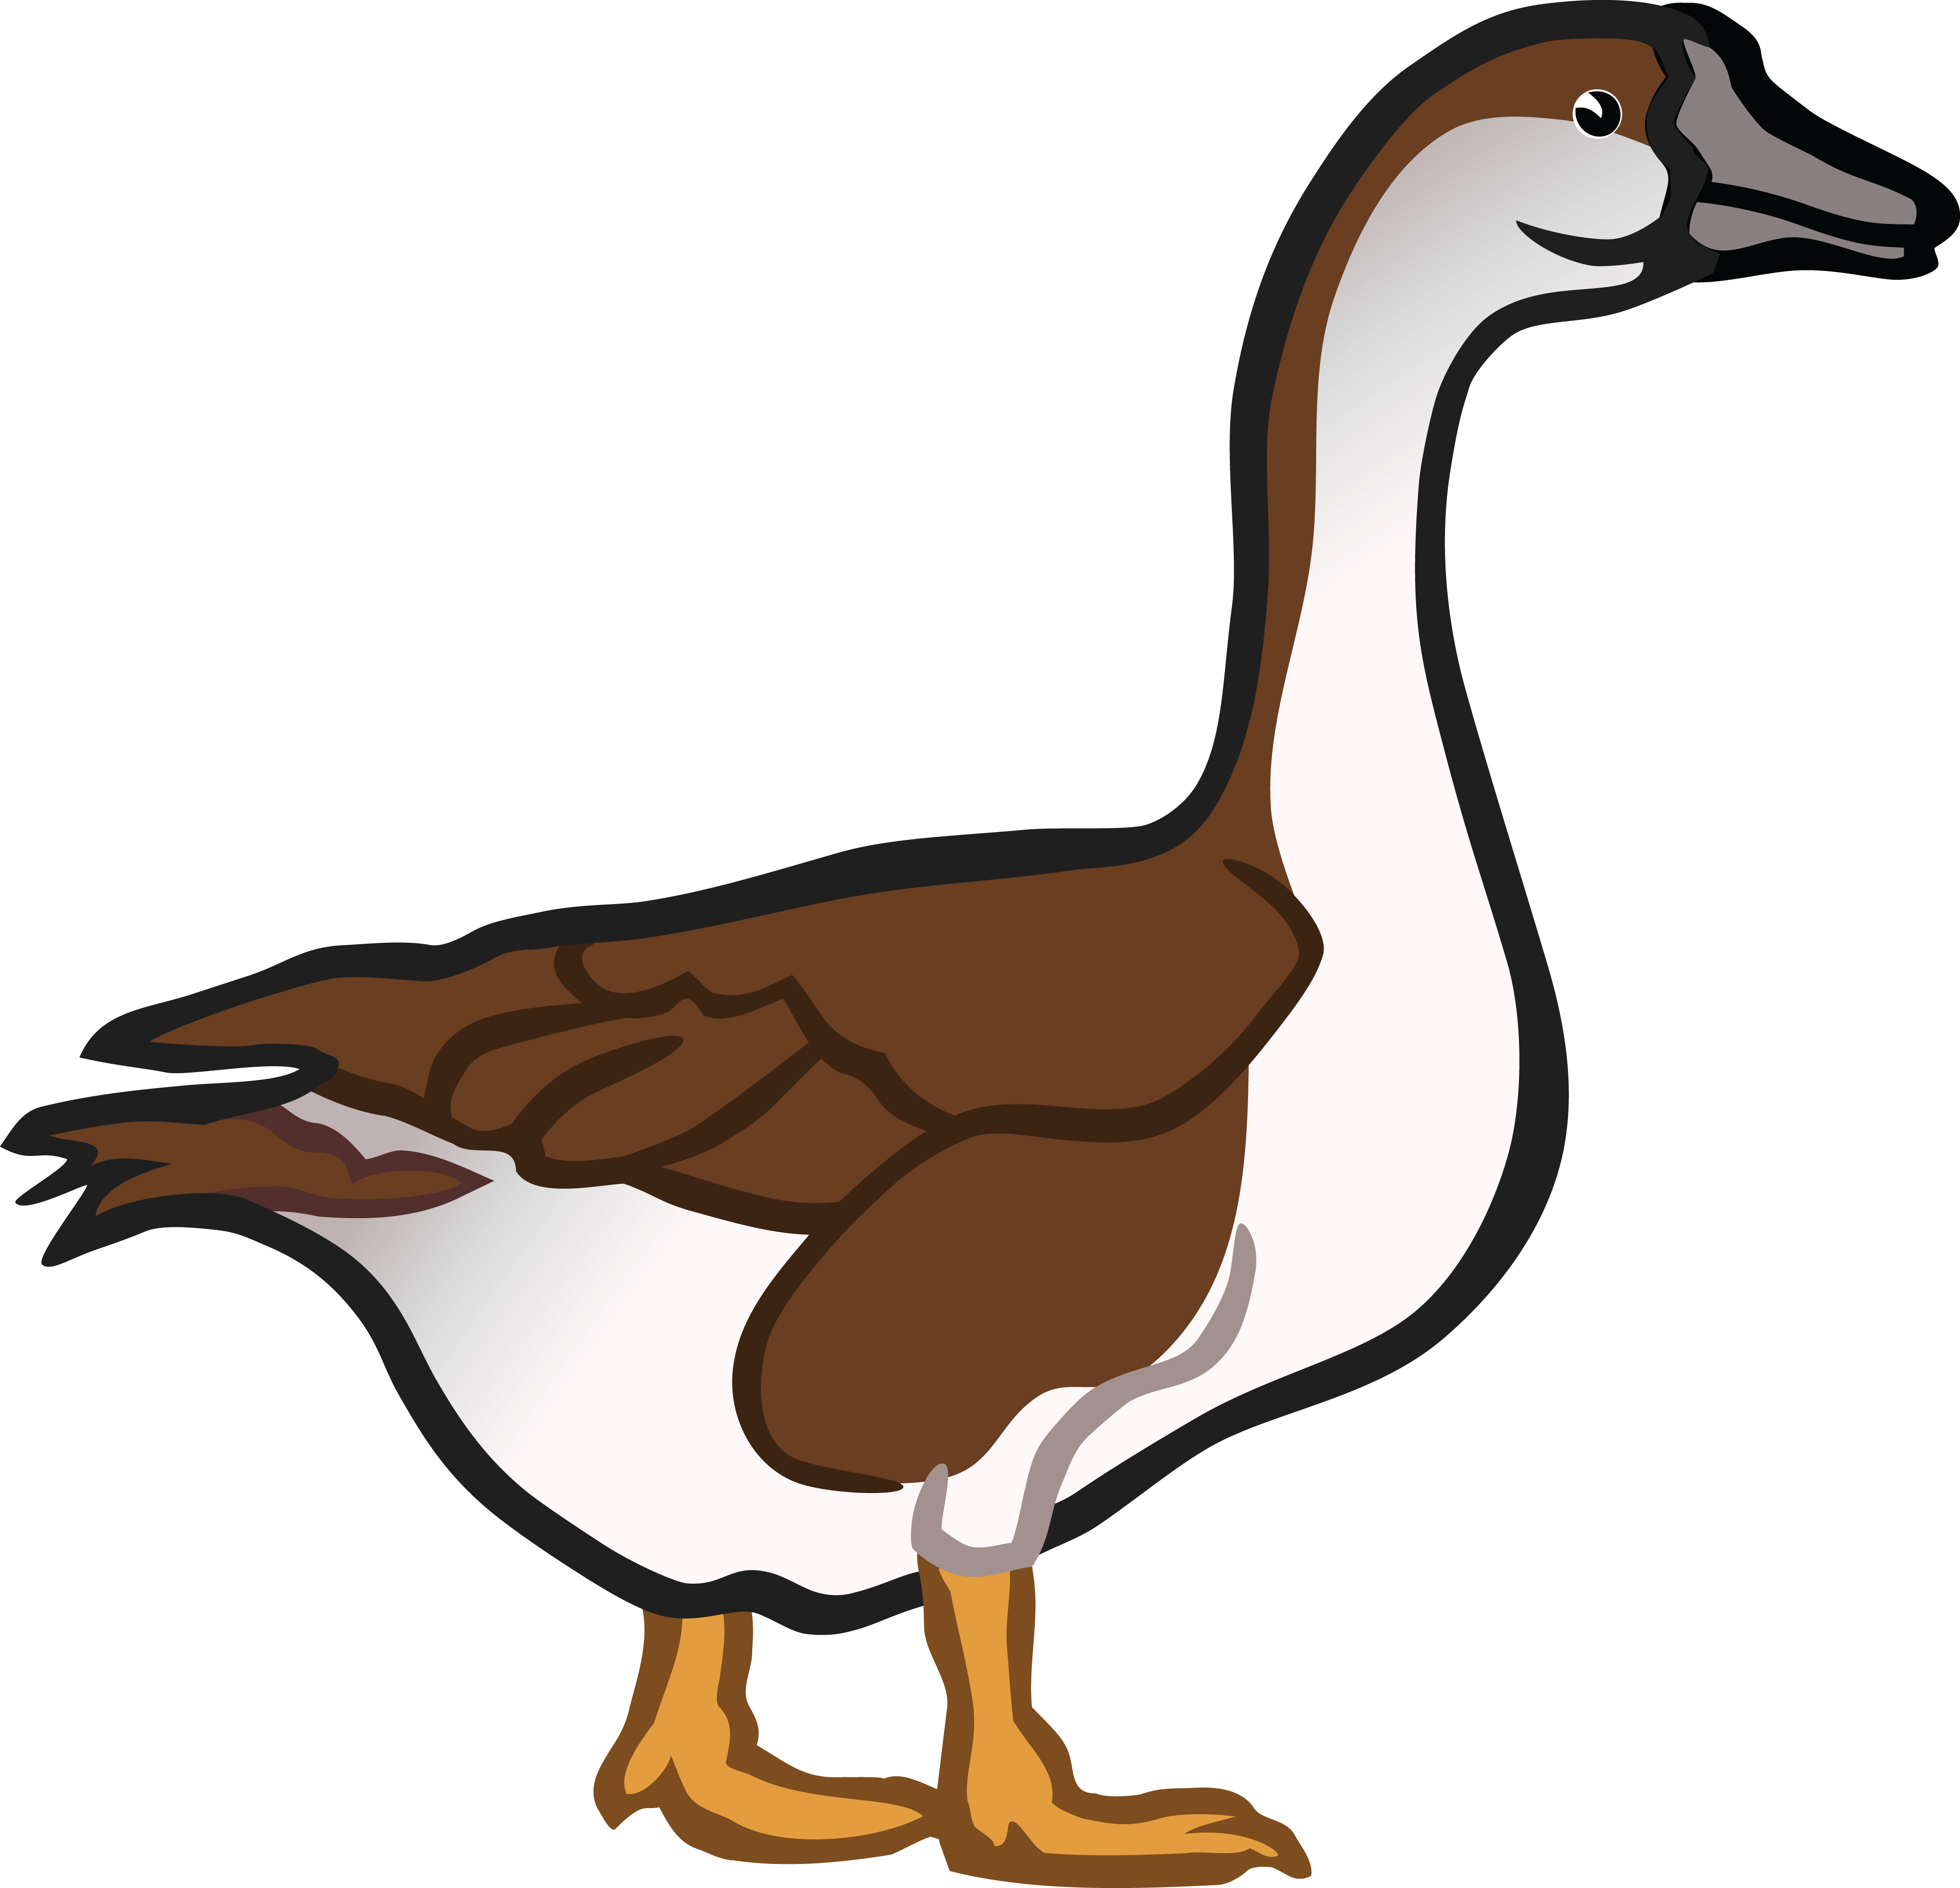 goose hunting clipart - photo #4